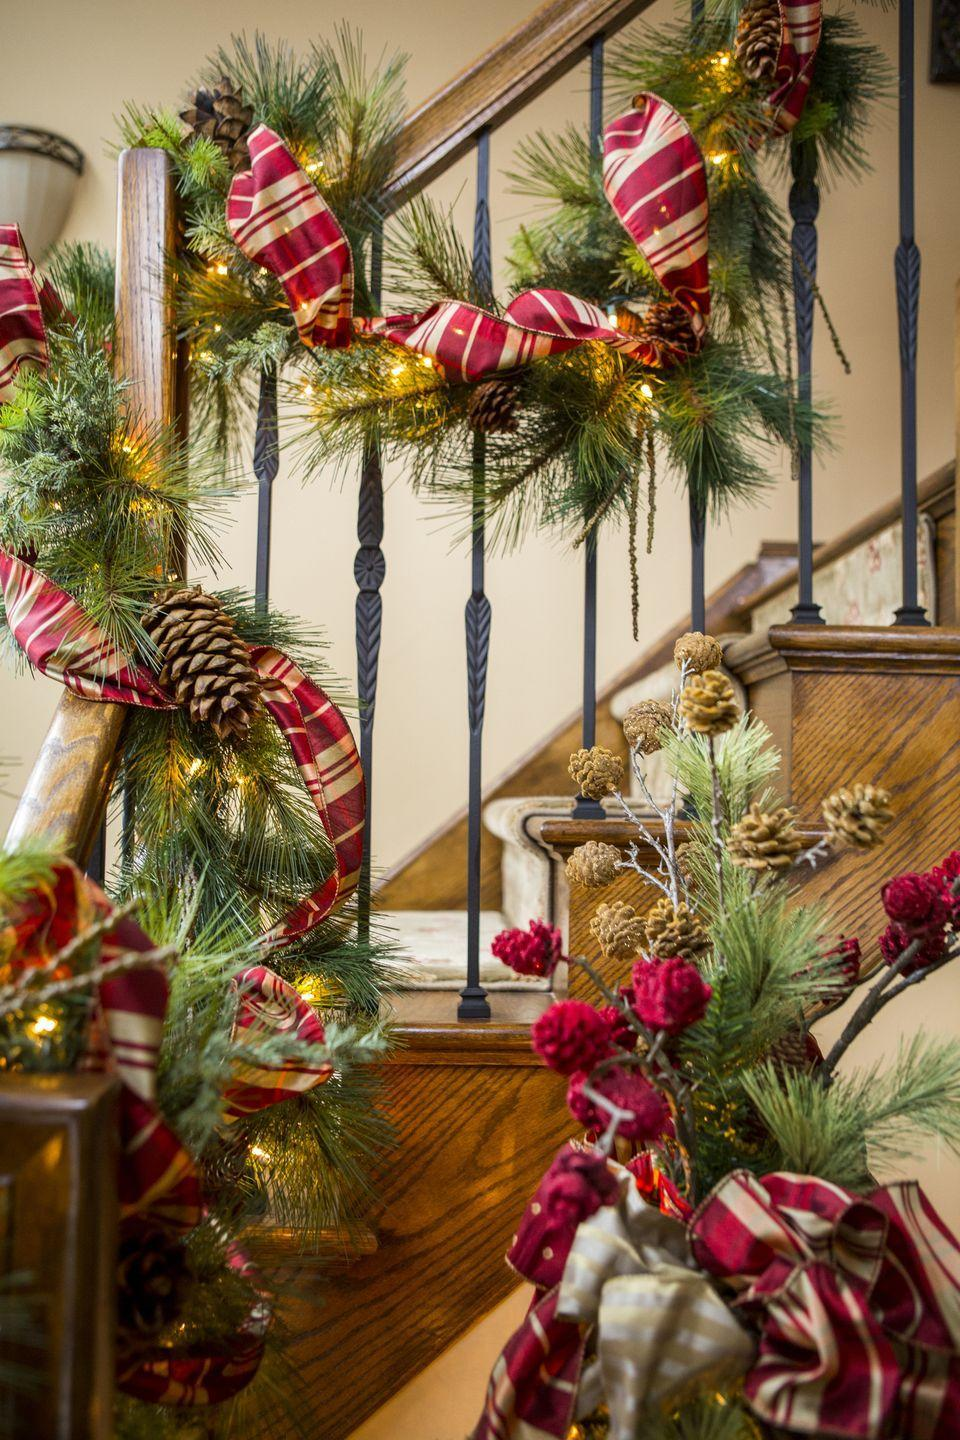 """<p>A wide ribbon in a traditional Christmas color or pattern is an easy way to add some holiday flair to pine garland. </p><p><a class=""""link rapid-noclick-resp"""" href=""""https://www.amazon.com/Morex-Ribbon-Festival-Fabric-50-Yard/dp/B00A23JZME?tag=syn-yahoo-20&ascsubtag=%5Bartid%7C10072.g.34479907%5Bsrc%7Cyahoo-us"""" rel=""""nofollow noopener"""" target=""""_blank"""" data-ylk=""""slk:SHOP HOLIDAY RIBBON"""">SHOP HOLIDAY RIBBON</a></p>"""